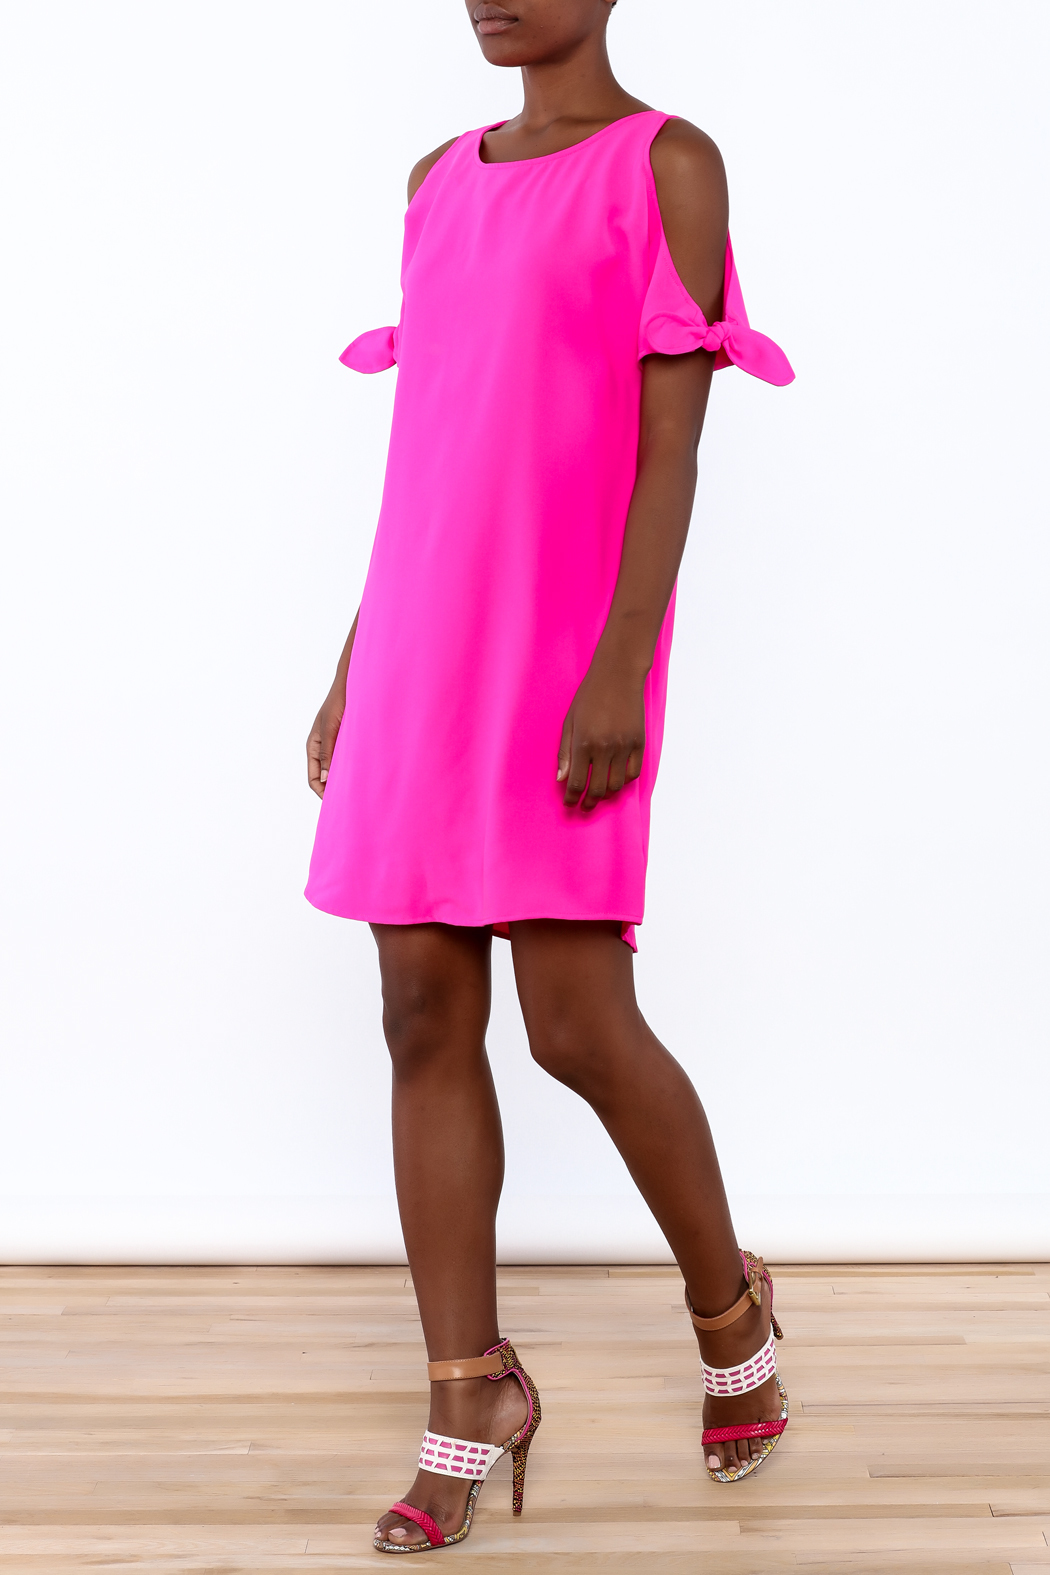 Skies Are Blue Bright Pink Dress From North Carolina By